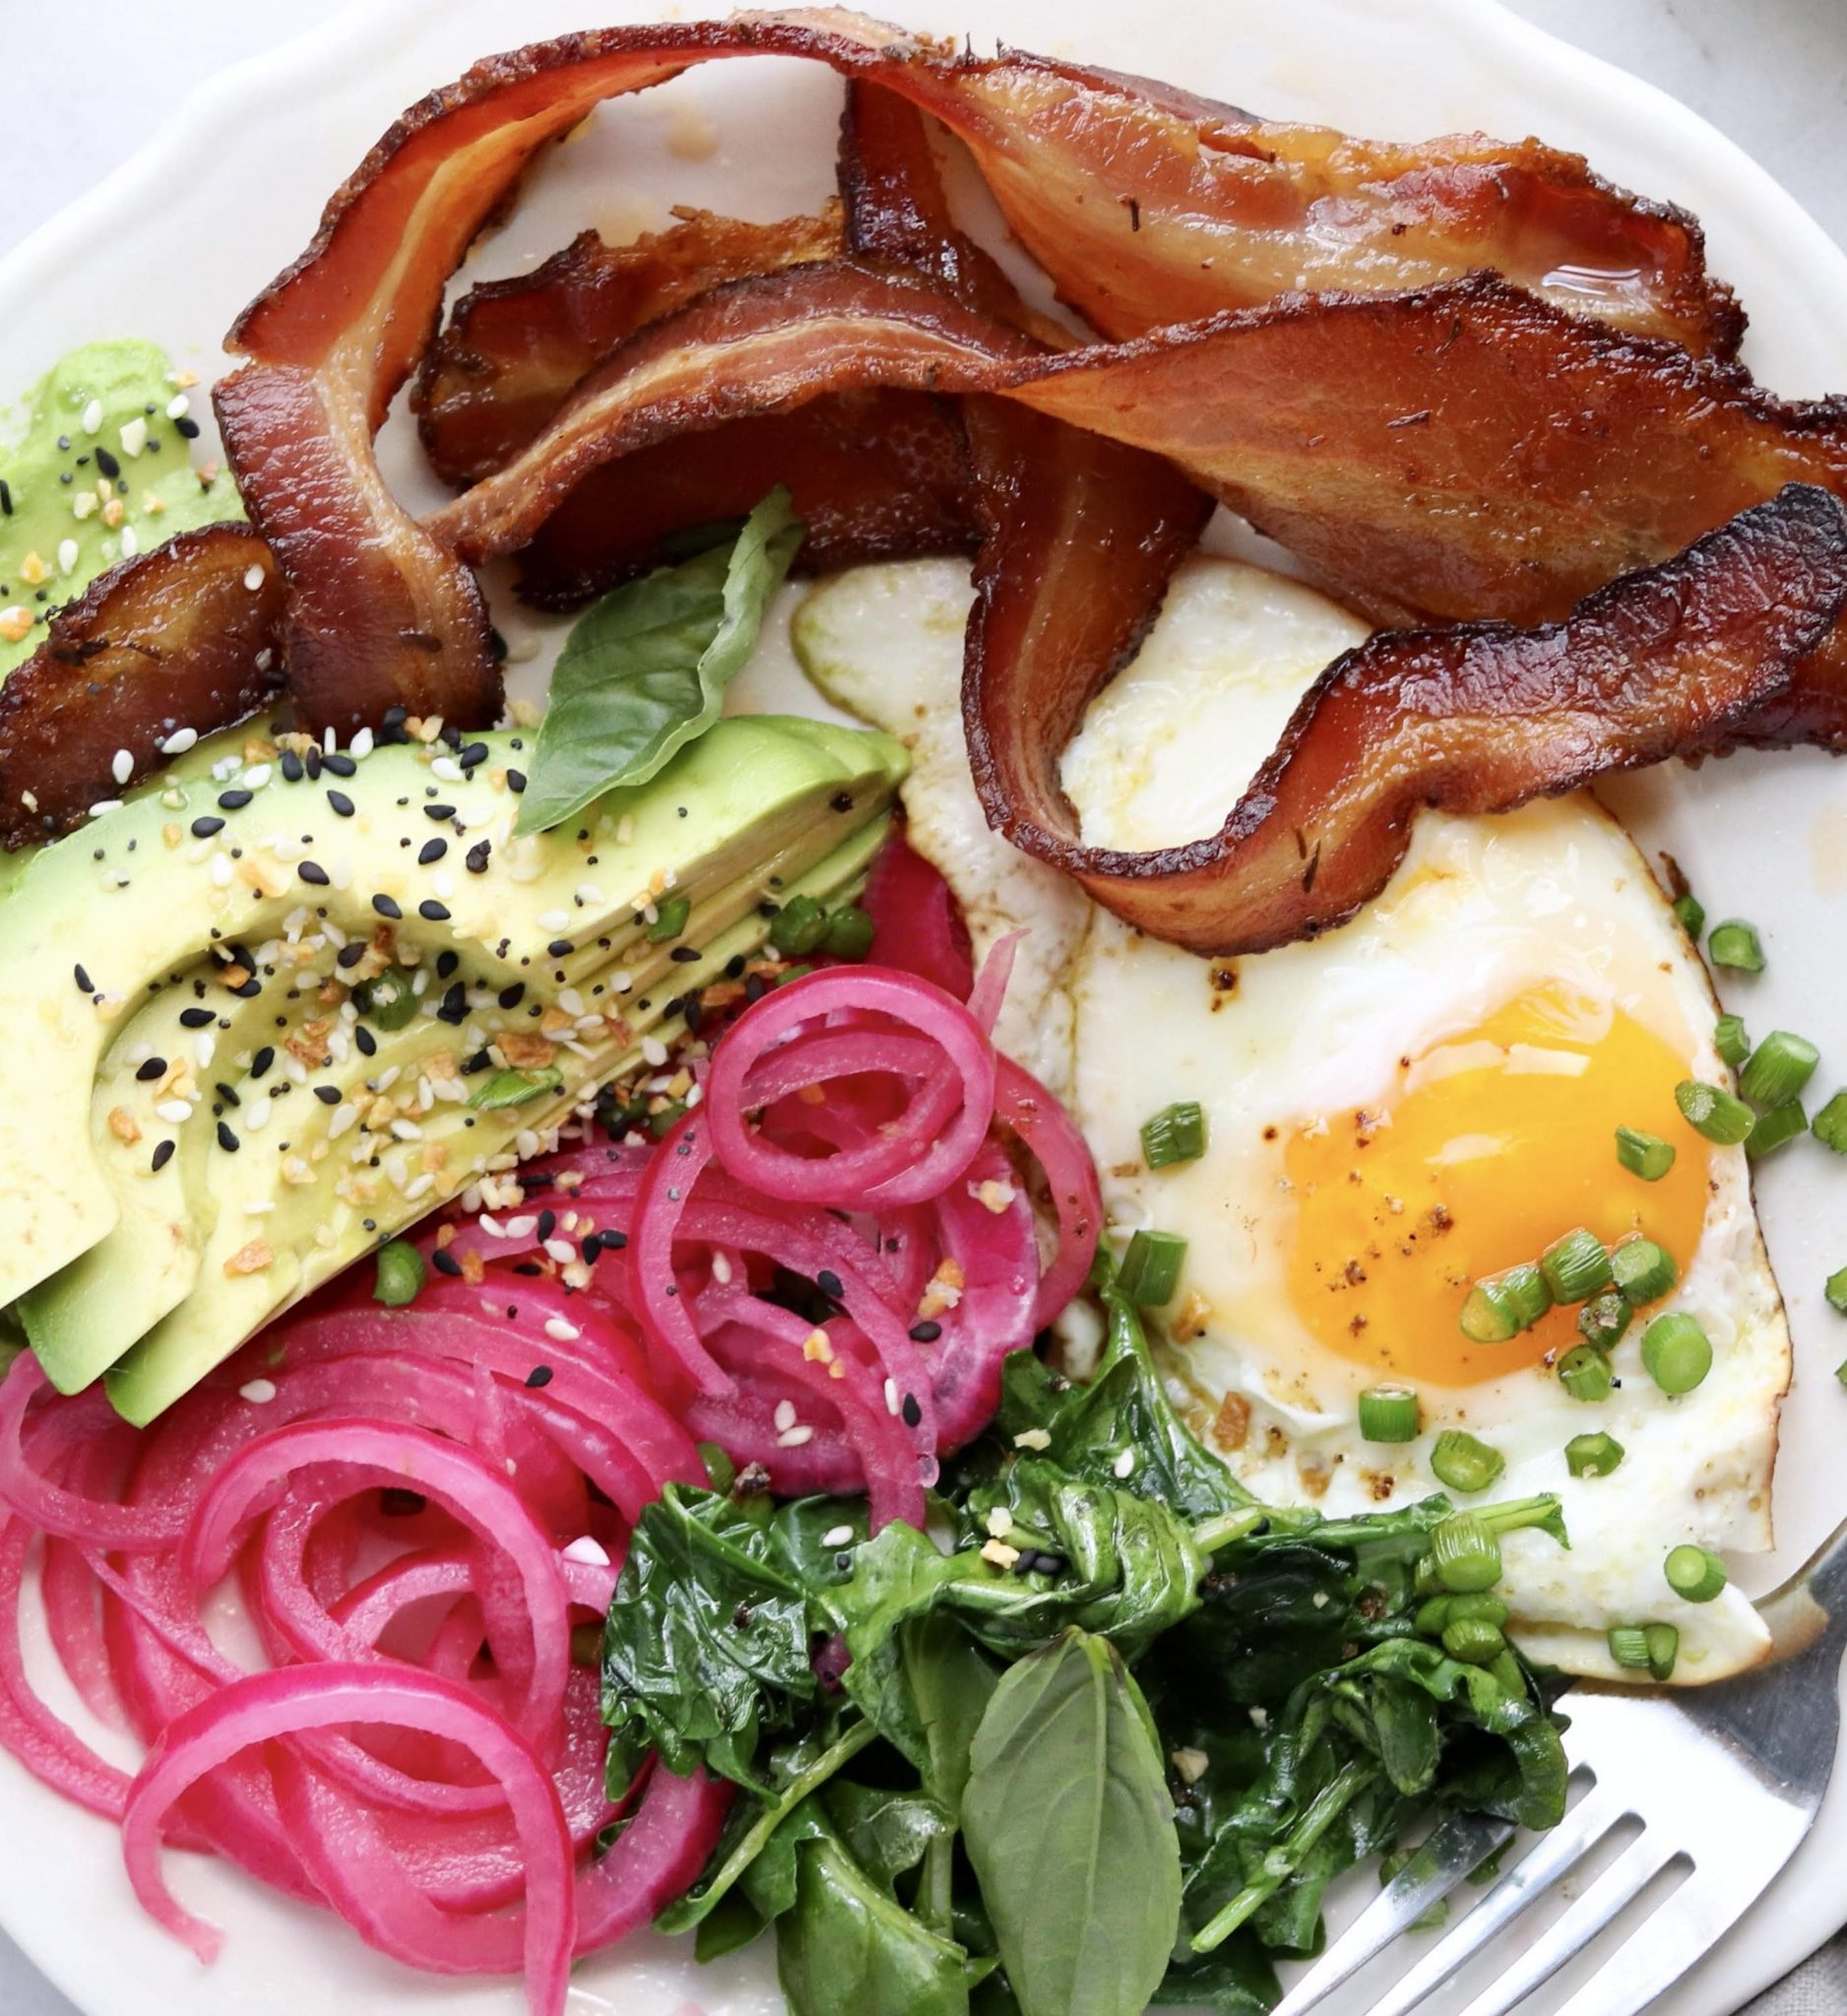 A completed dish of pickled onions, bacon, a fried egg, avocado and herbs.